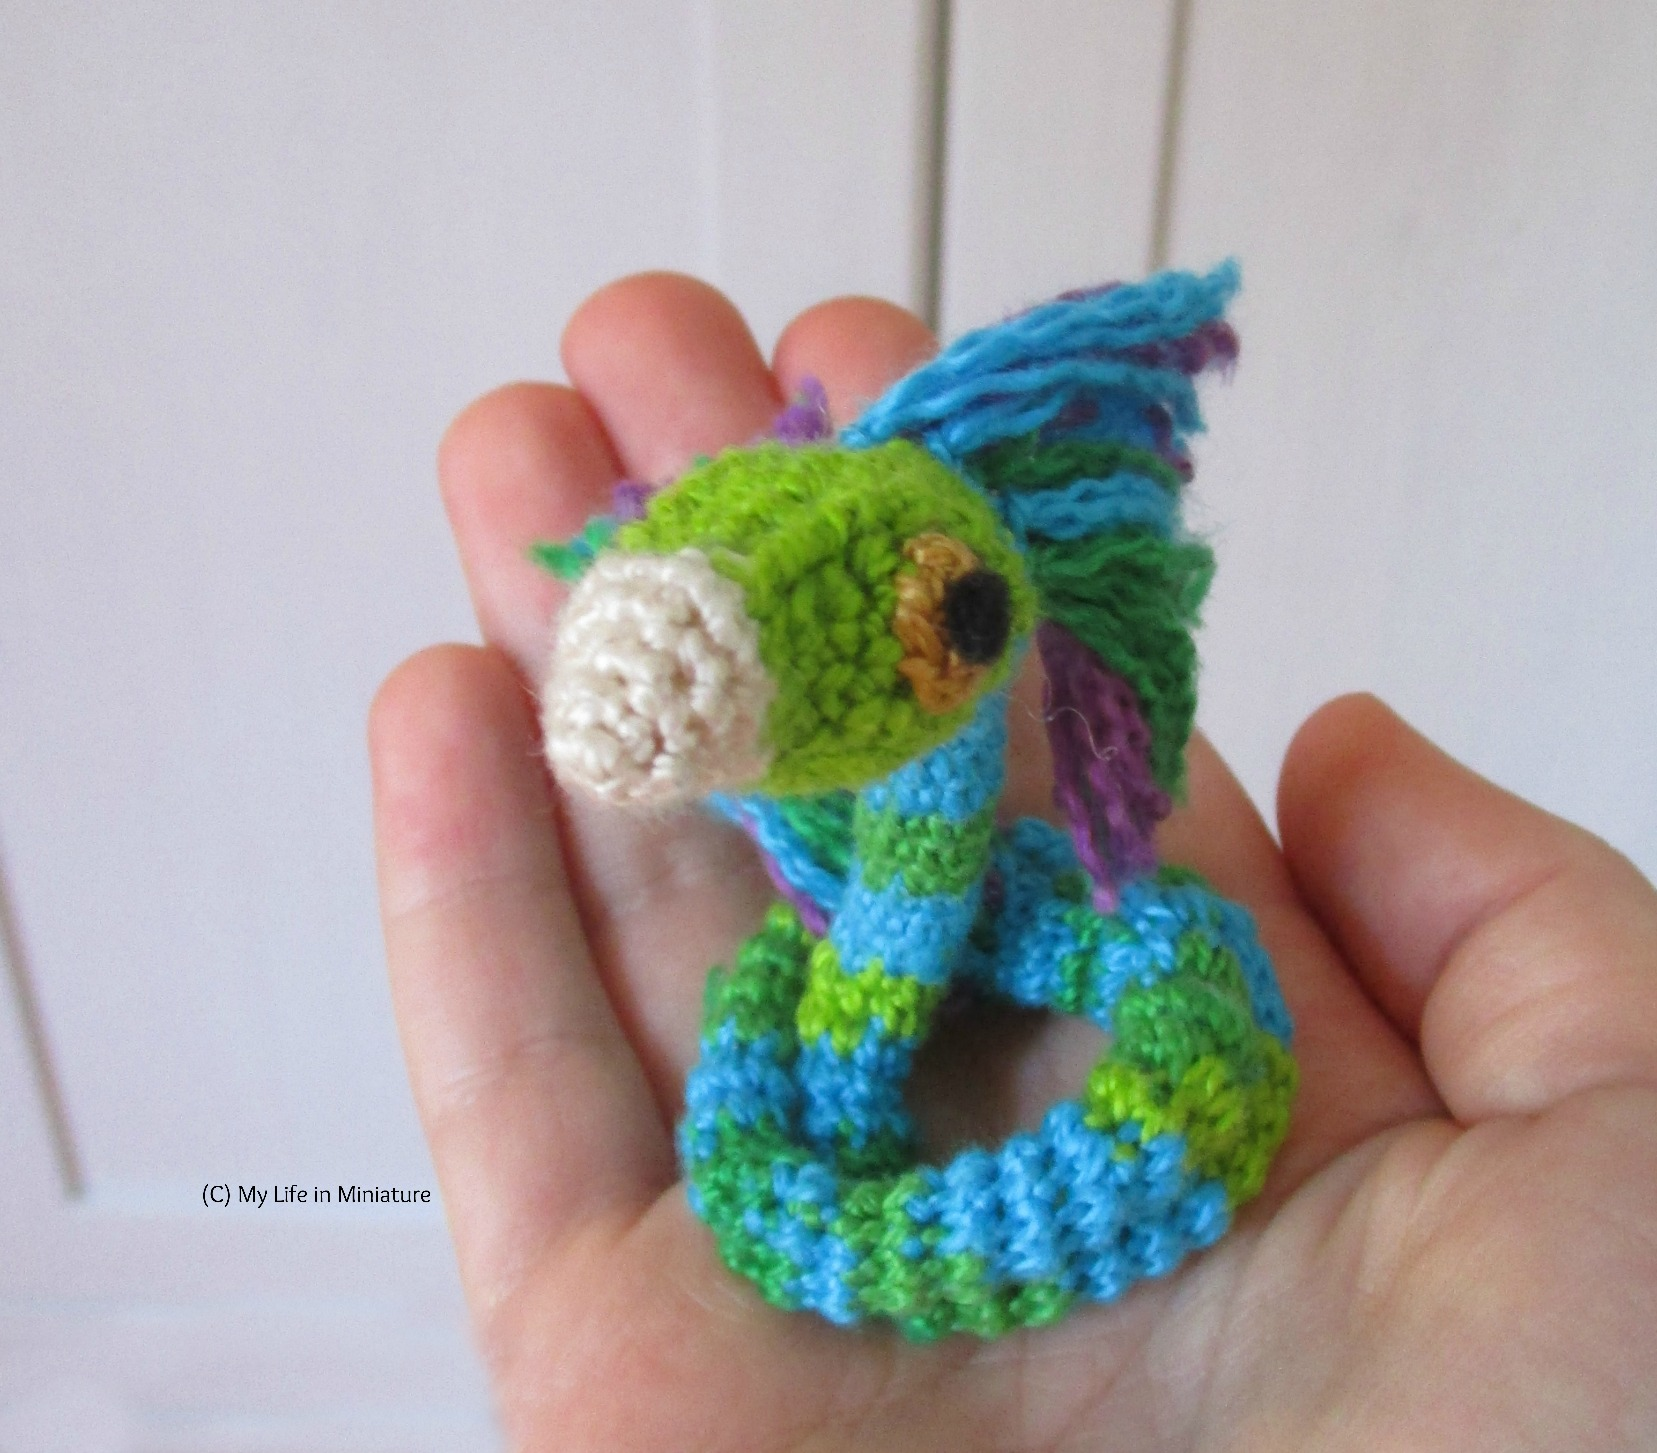 A crocheted Occamy sits coiled in the author's palm. Its beak and face are tilted up towards the camera.